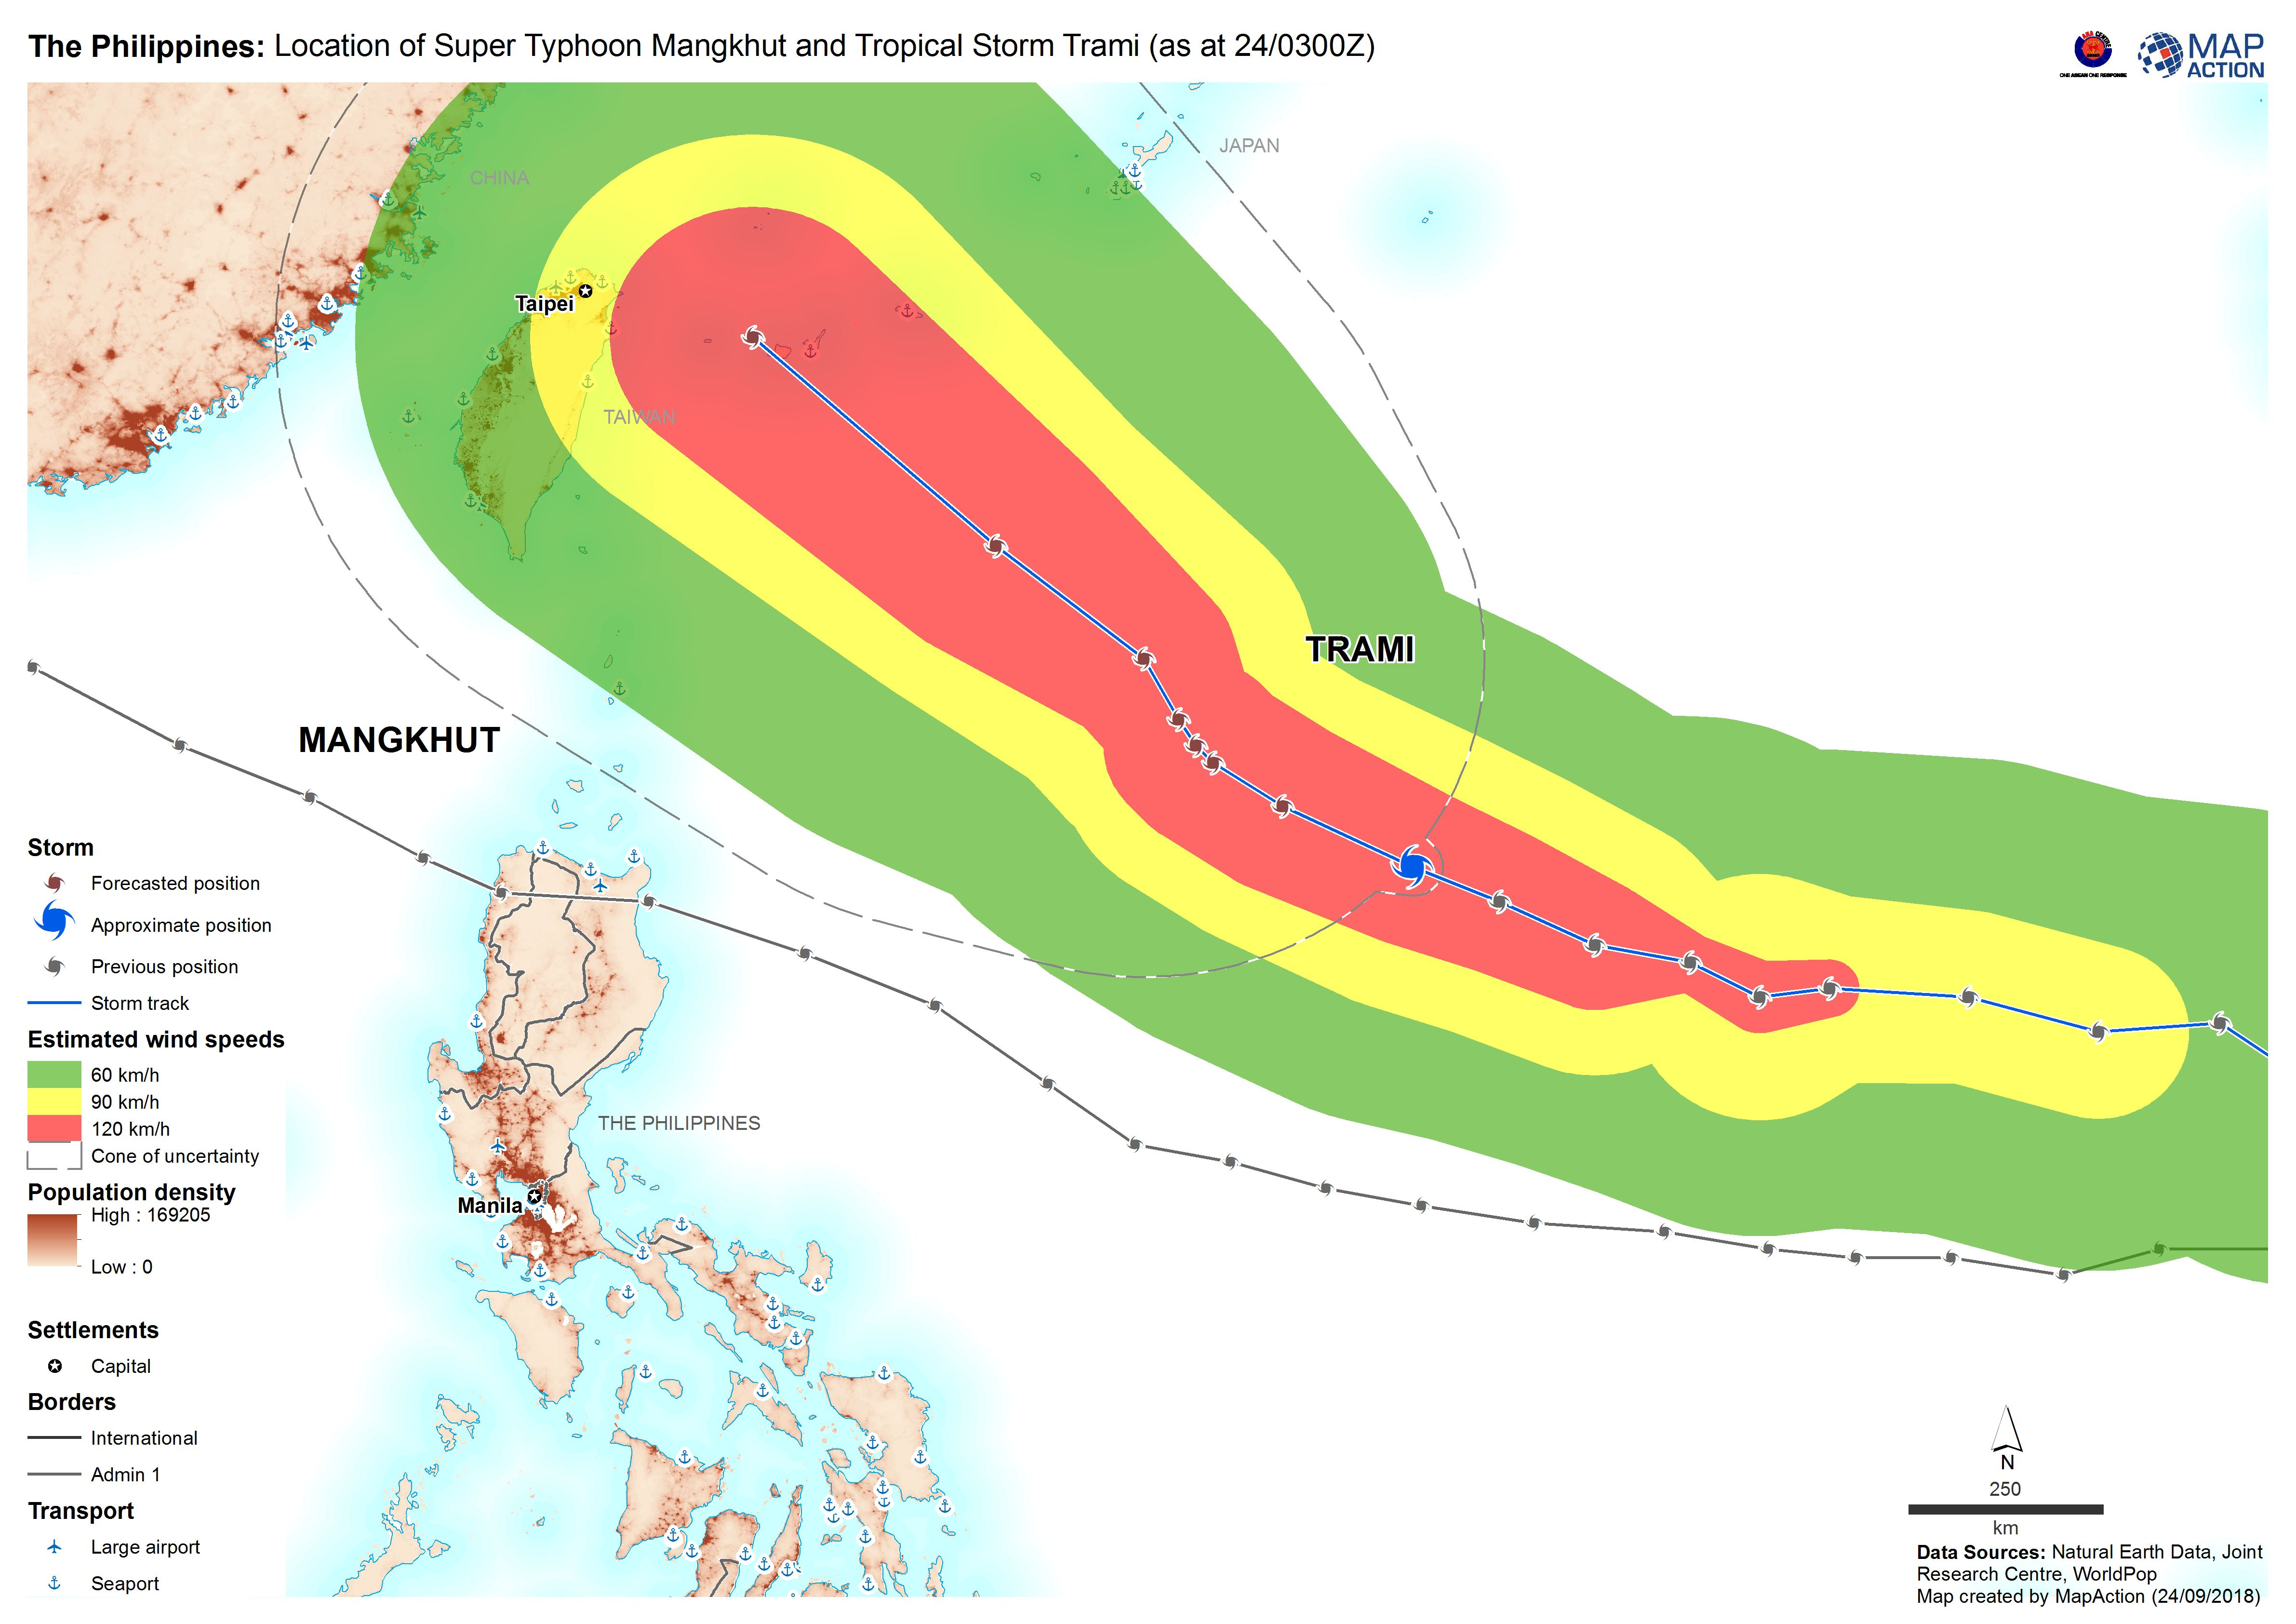 The Philippines: Location of Super Typhoon Mangkhut and